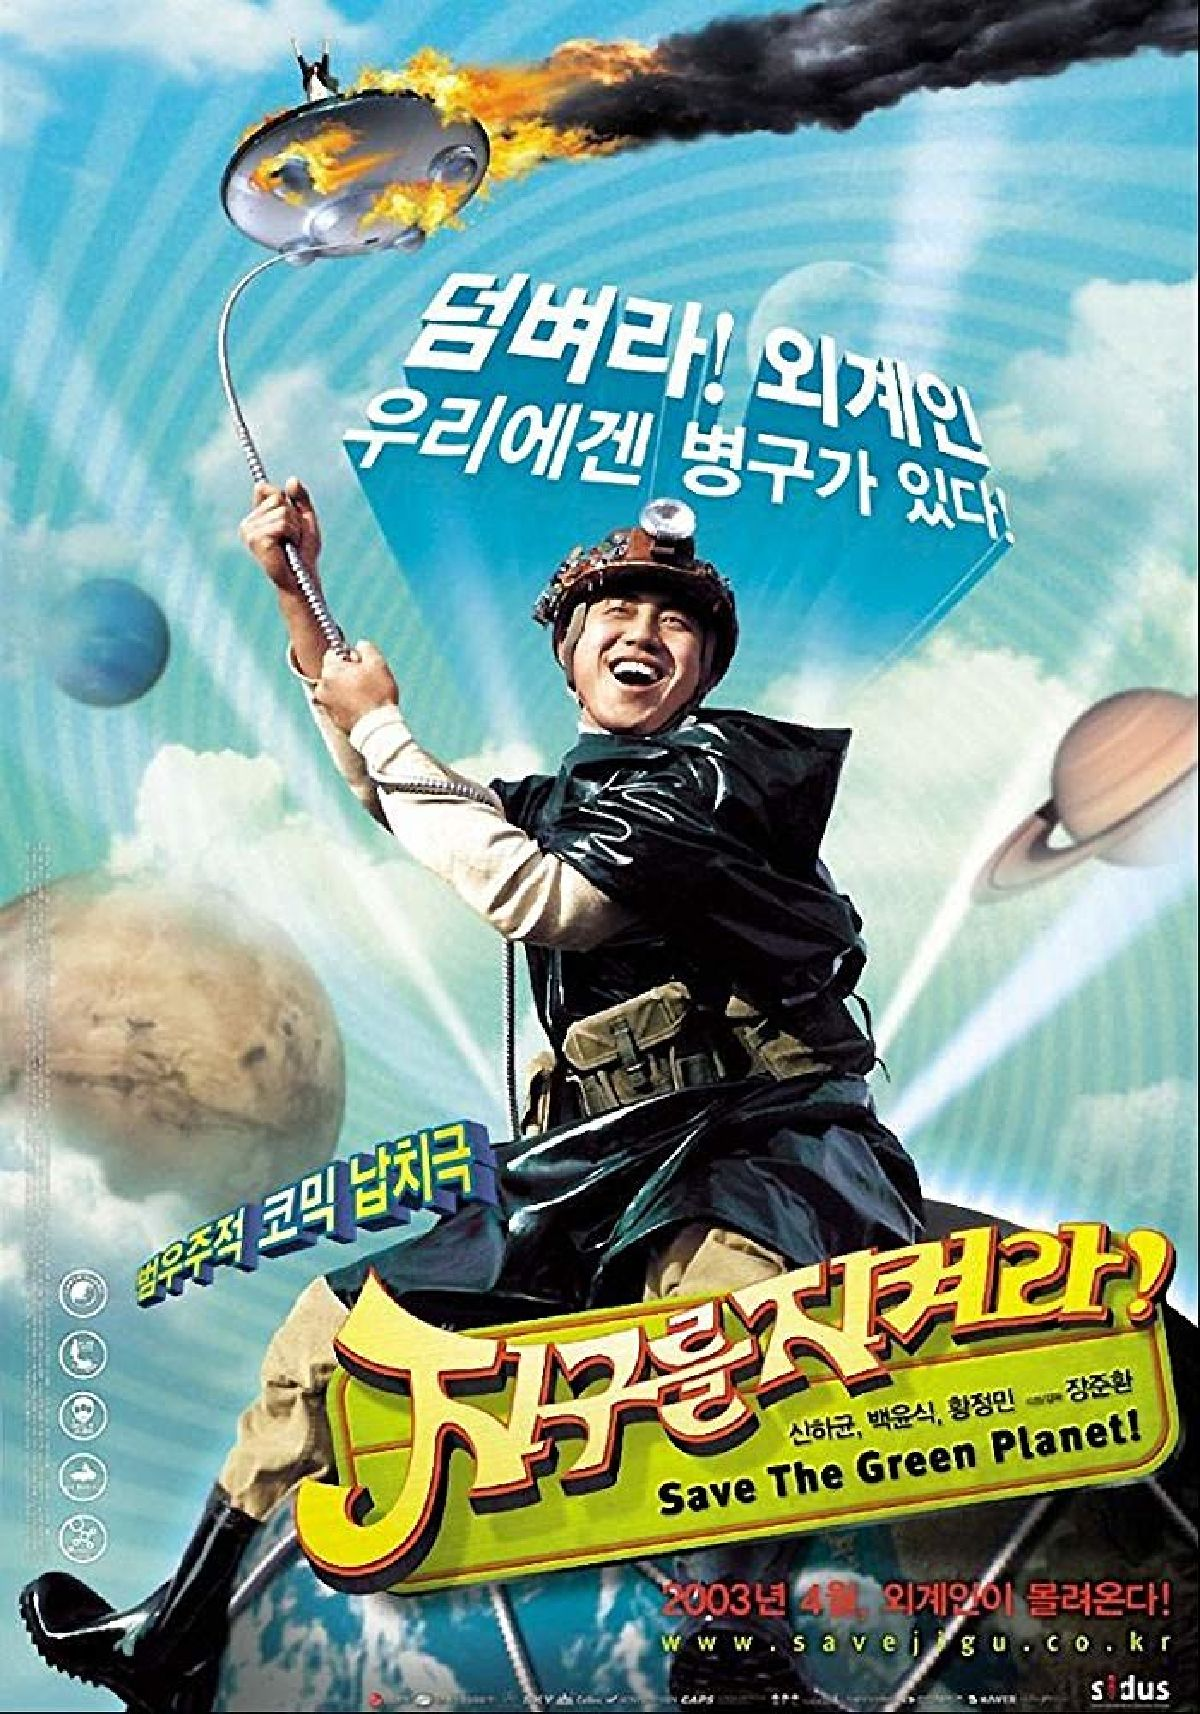 'Save The Green Planet!' movie poster